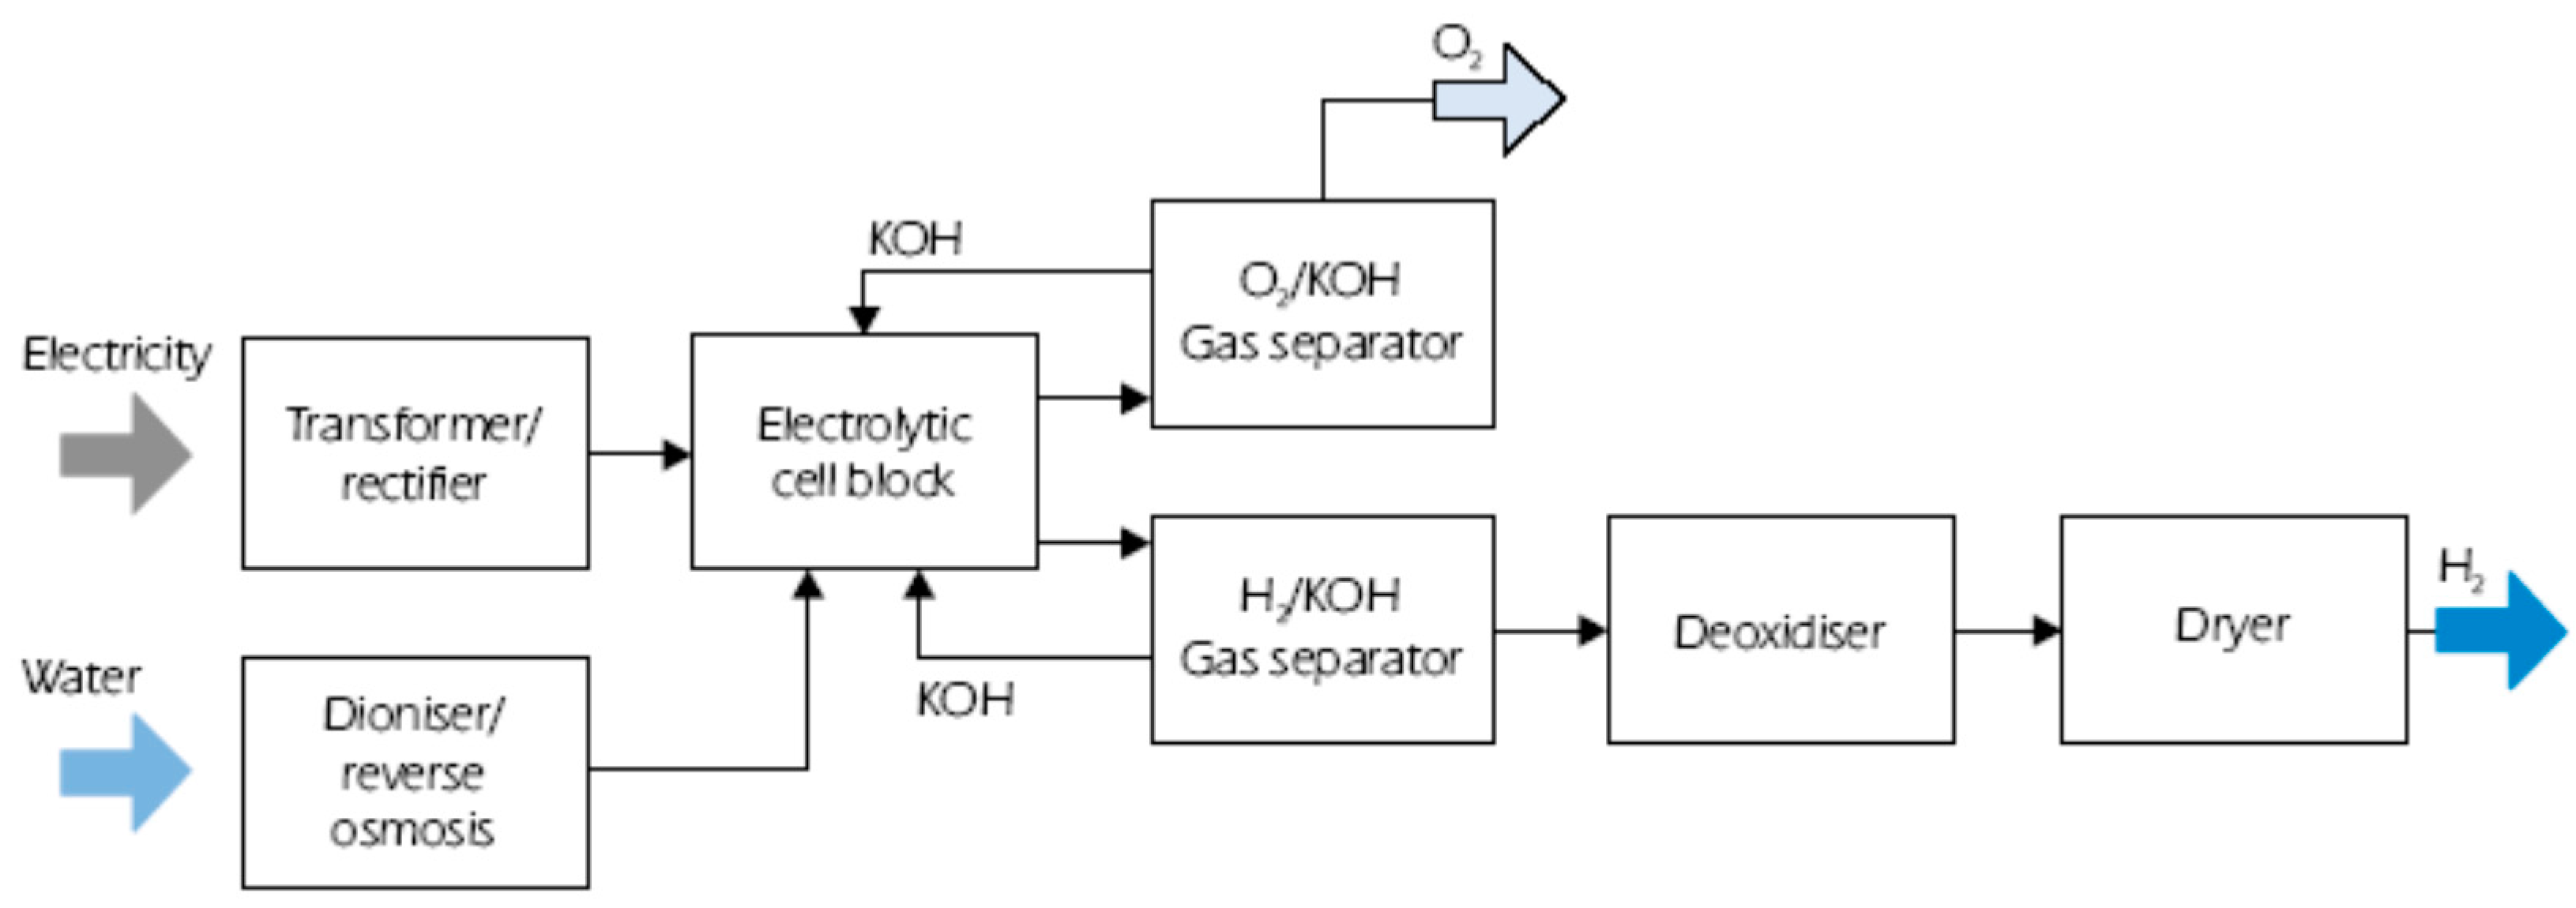 Energies Free Full Text Offshore Facilities To Produce Hydrogen Still Diagram Rectifying Plant For Purifying 10 00783 G001